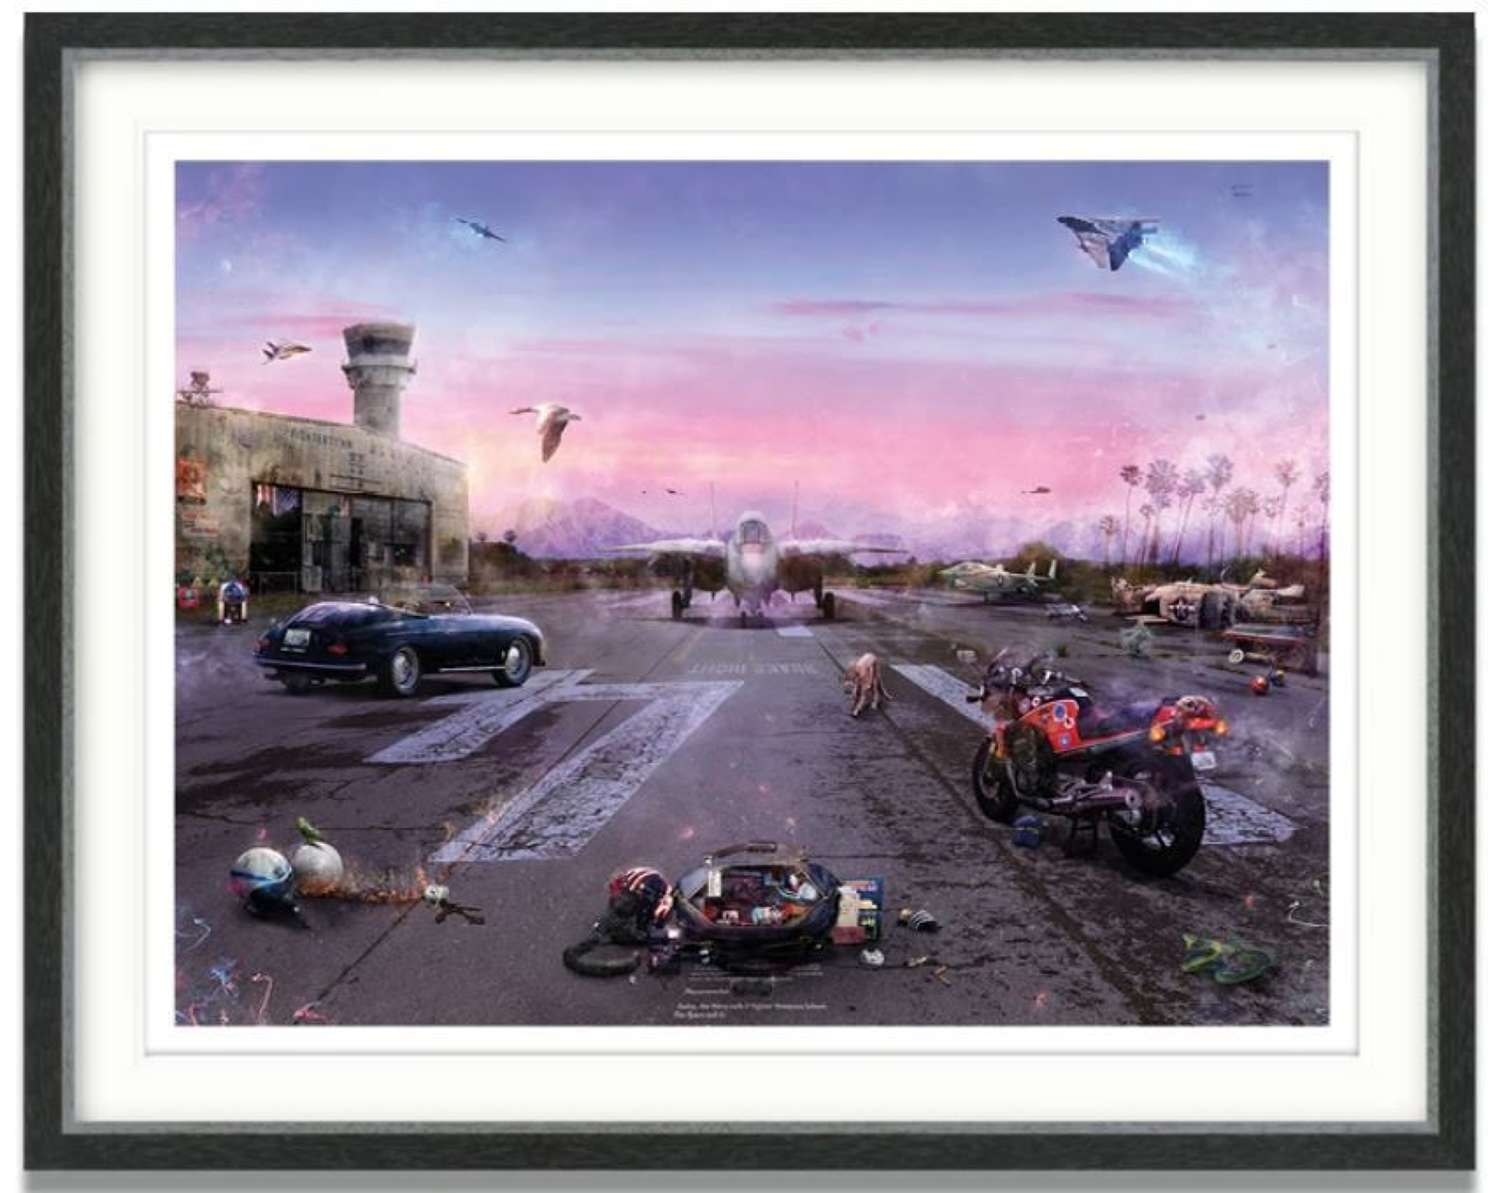 Destination Unknown (Top Gun) - Framed Art Print by Mark Davies